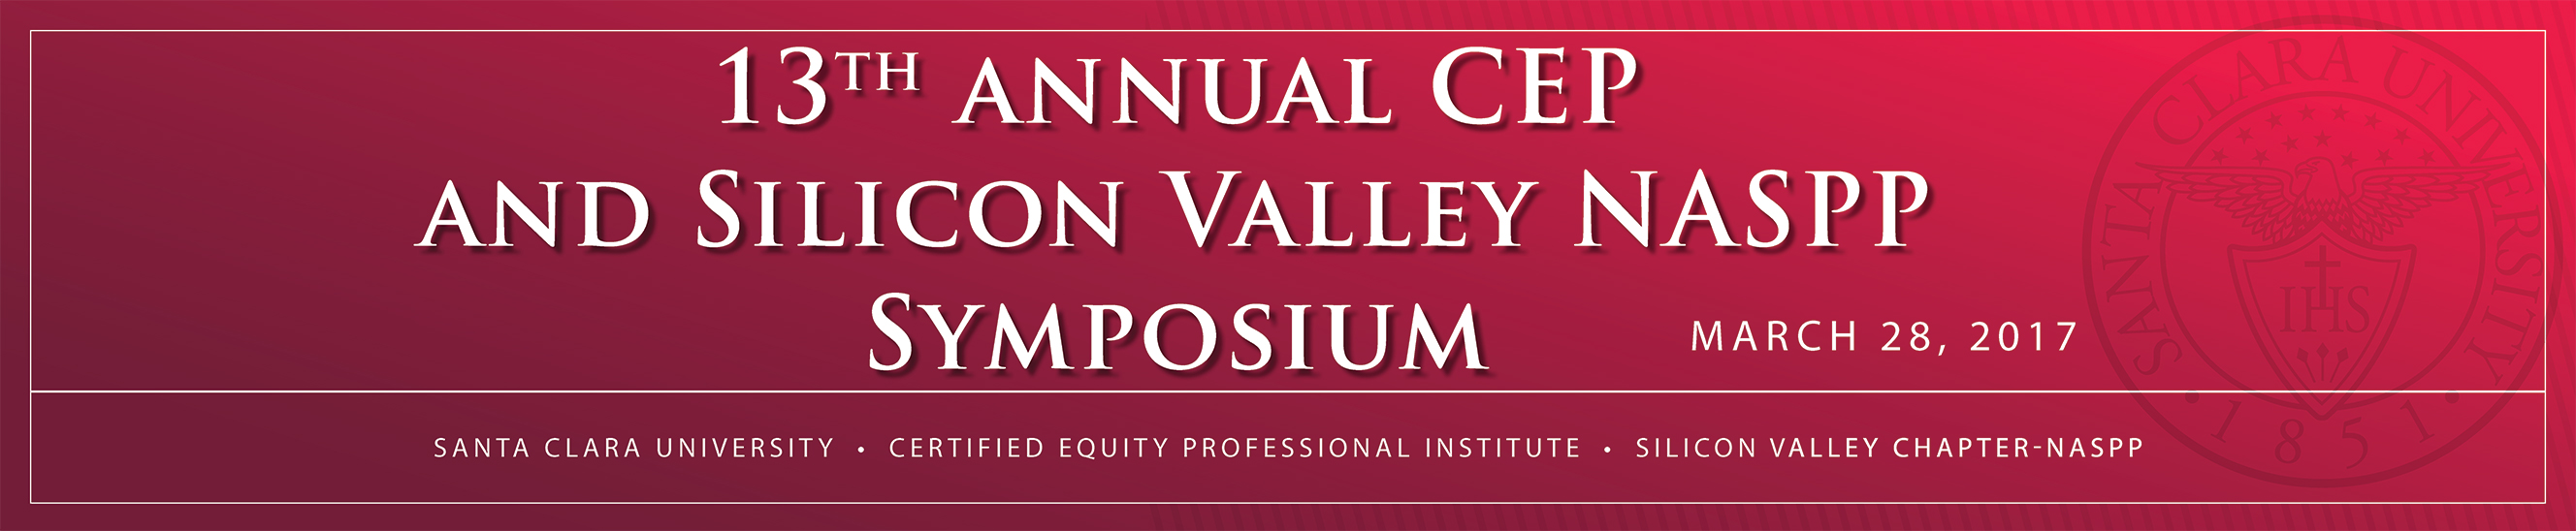 13th Annual CEP and Silicon Valley NASPP Symposium